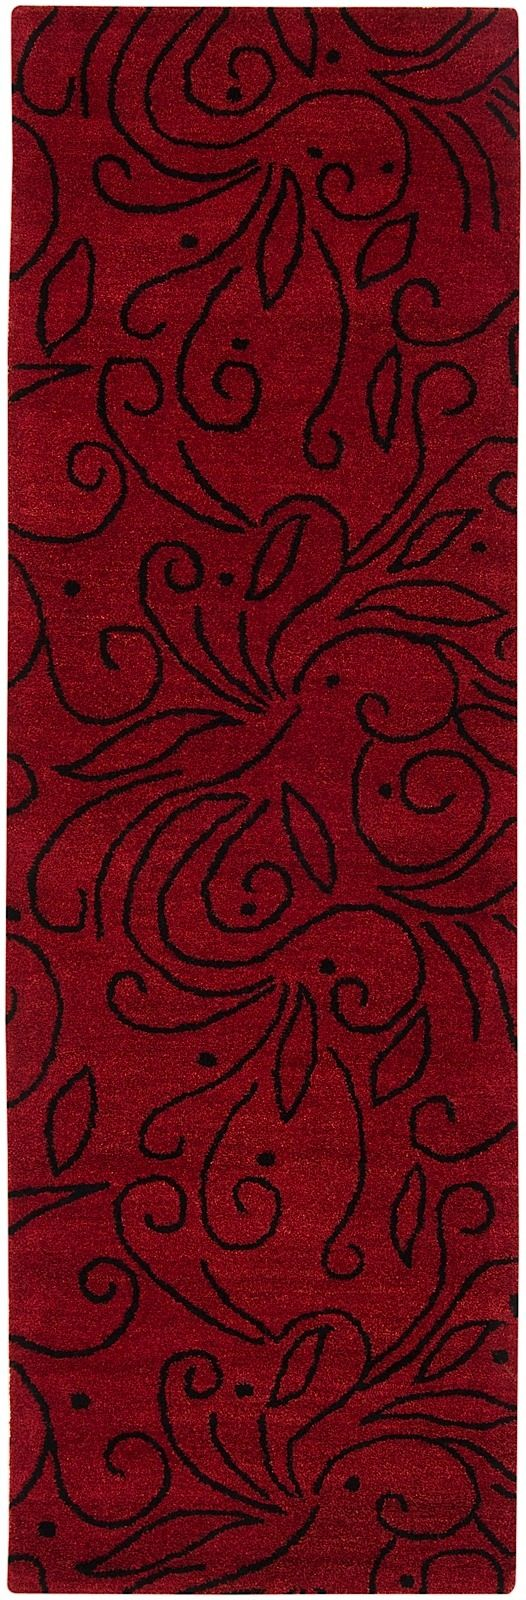 surya artist studio transitional area rug collection